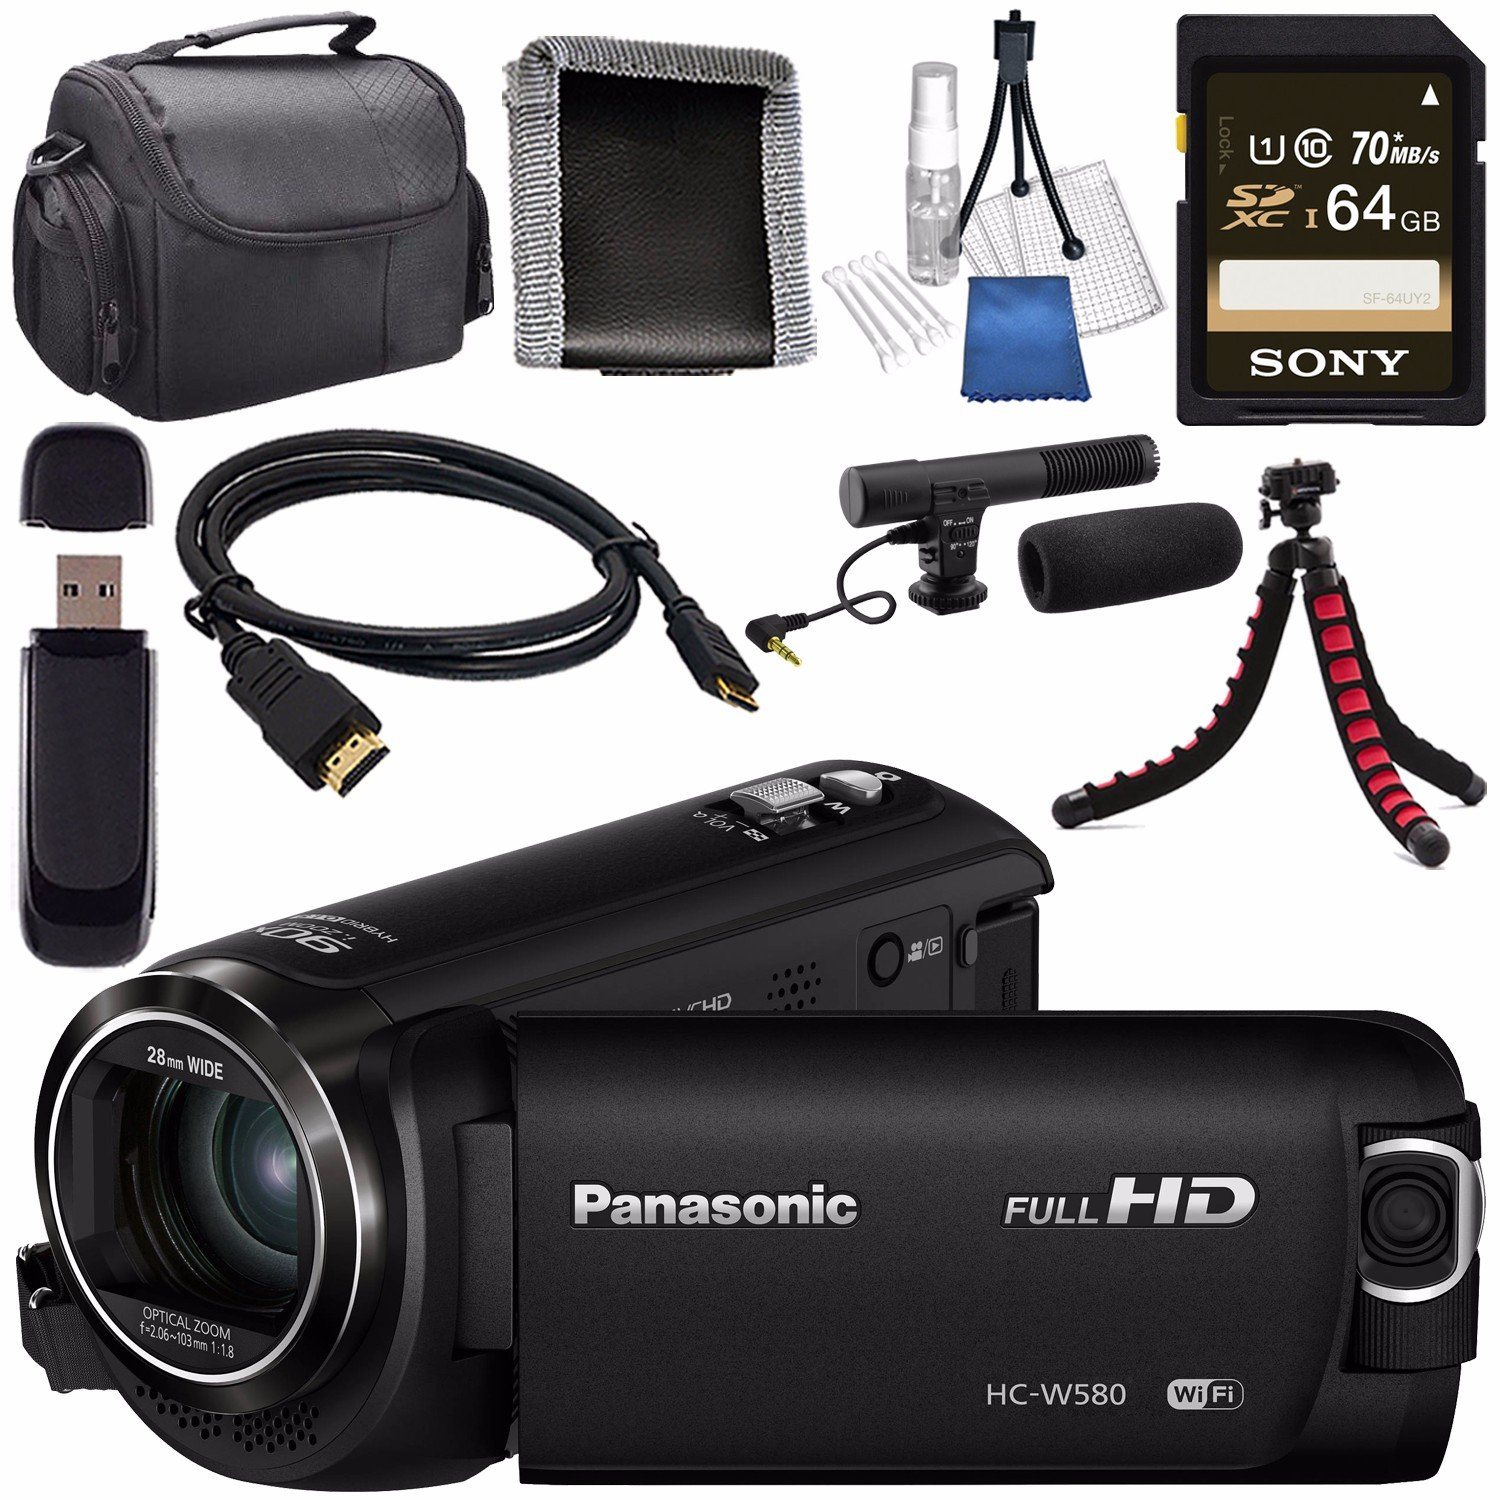 Panasonic HC-W580 HC-W580K Full HD Camcorder with Twin Camera + Sony 64GB SDXC Card + Flexible Tripod + Carrying Case + Memory Card Wallet + Card Reader + Mini HDMI Cable + Condenser Mic Bundle